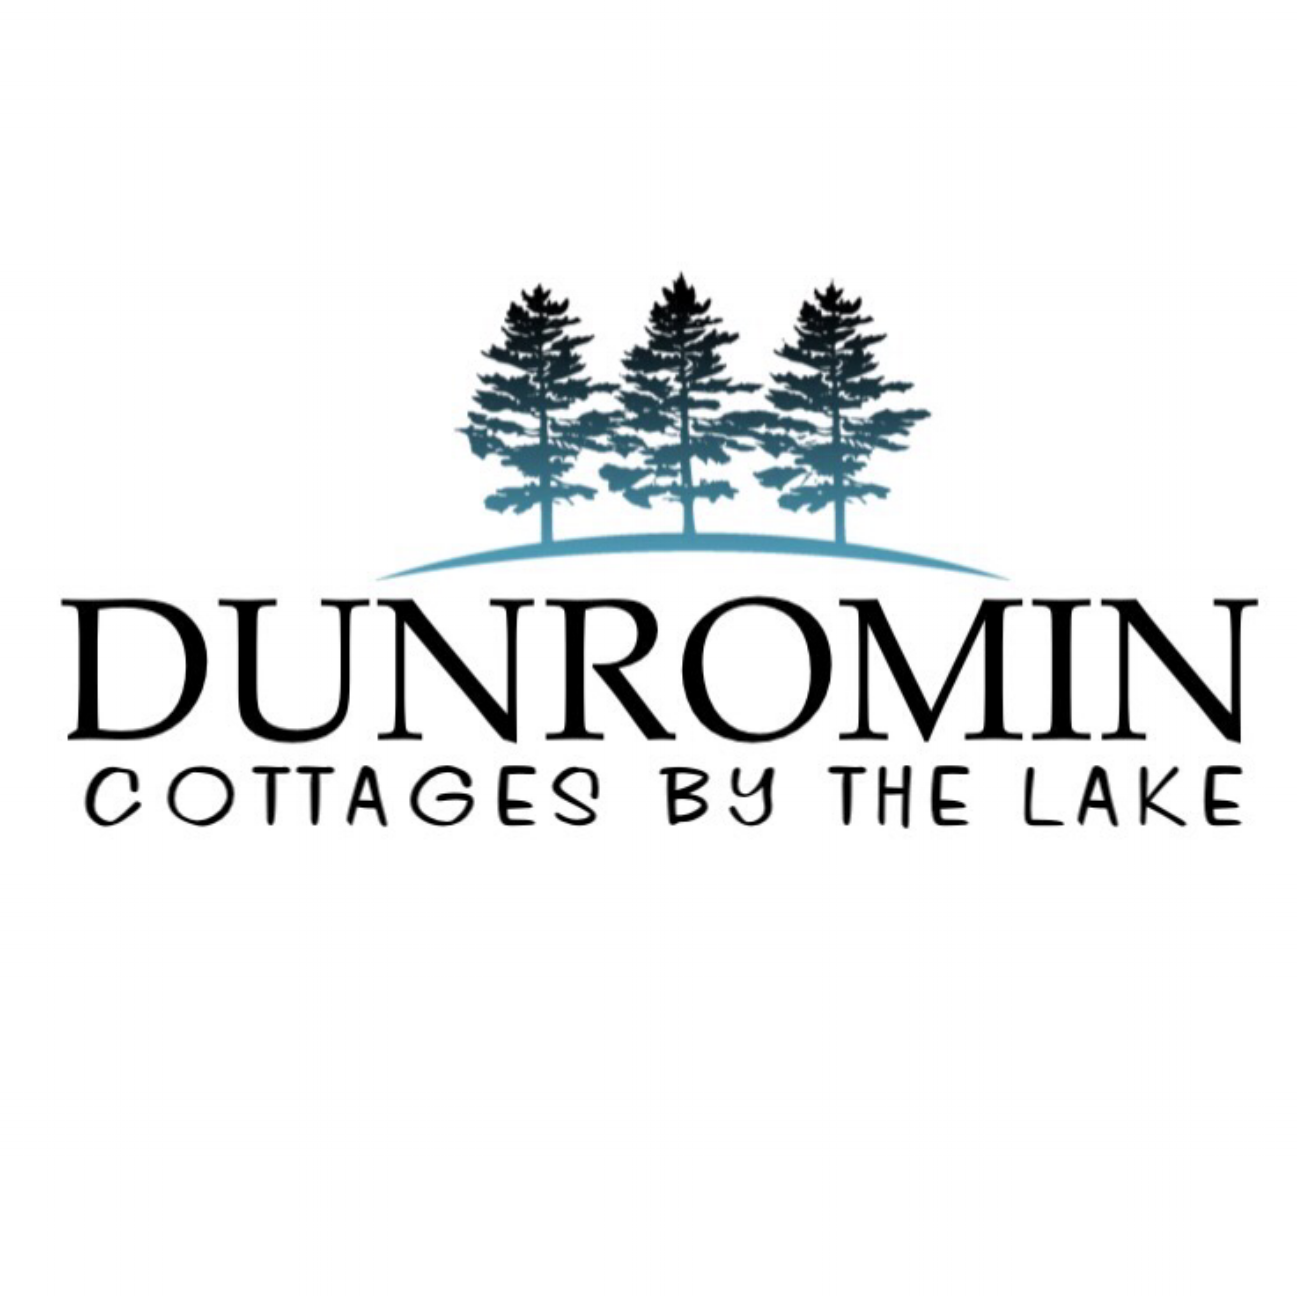 Dunromin Cottages By The Lake